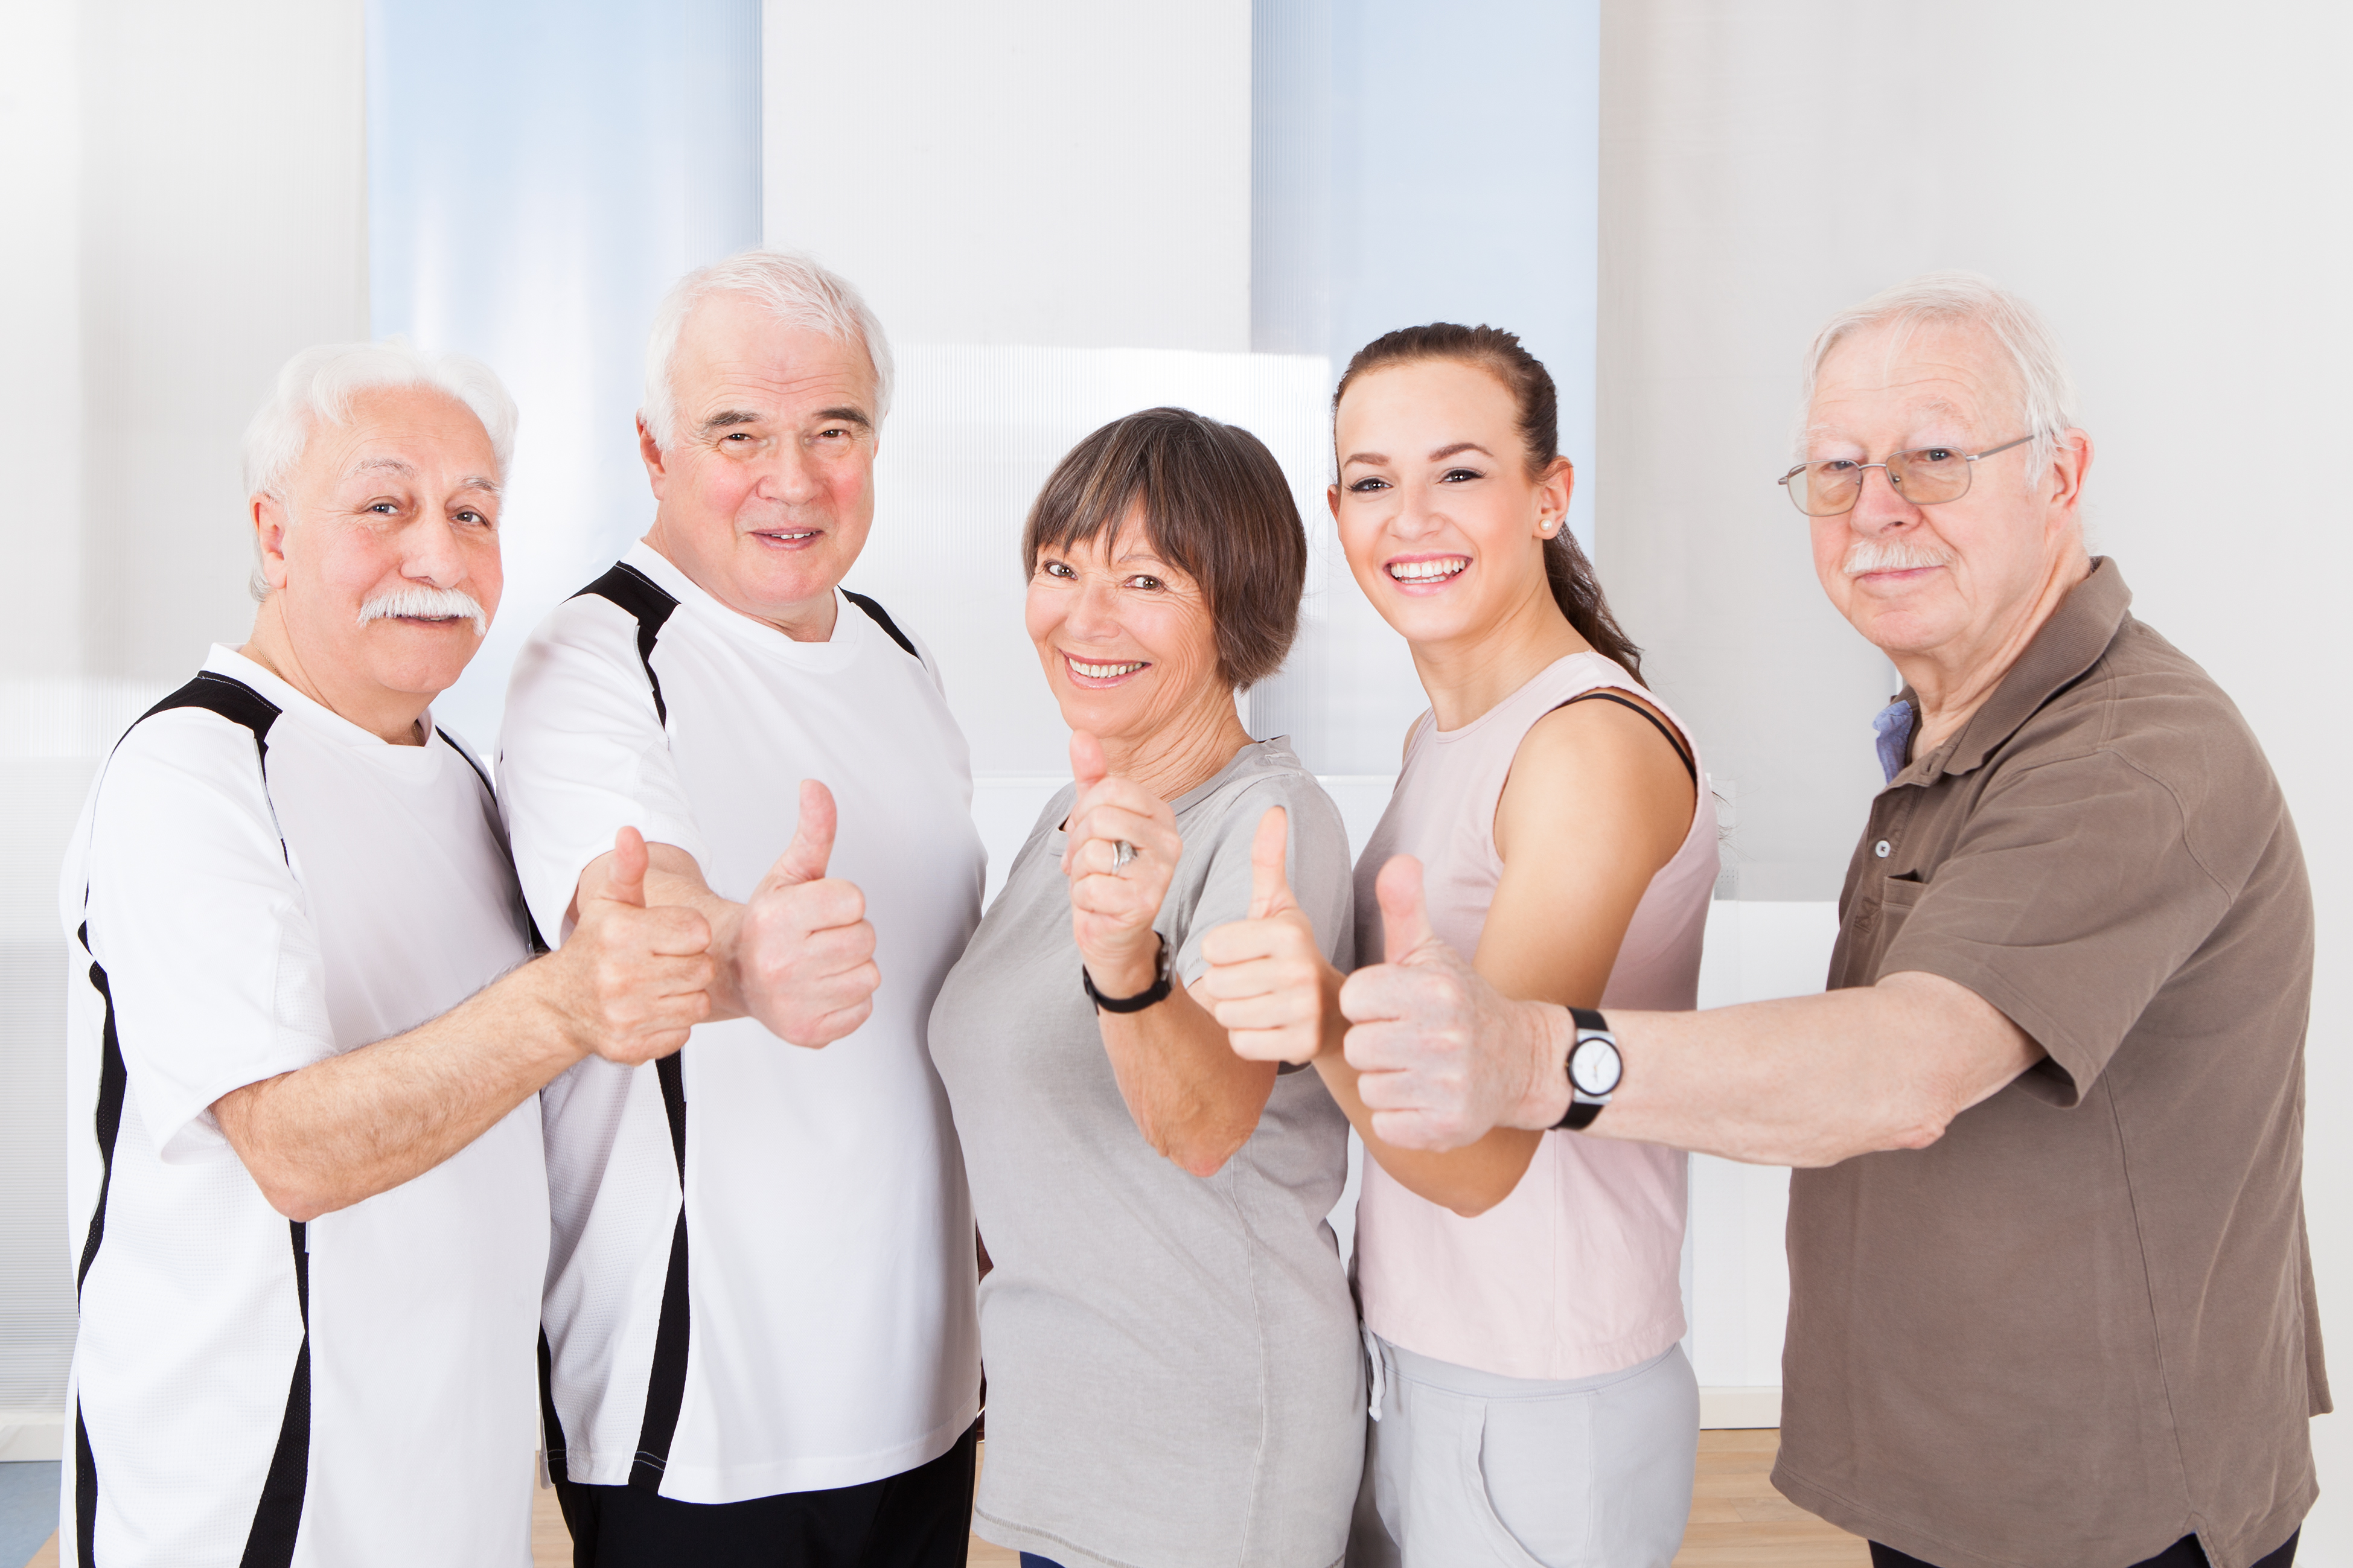 Portrait of confident trainer and senior customers showing thumbs up at healthclub